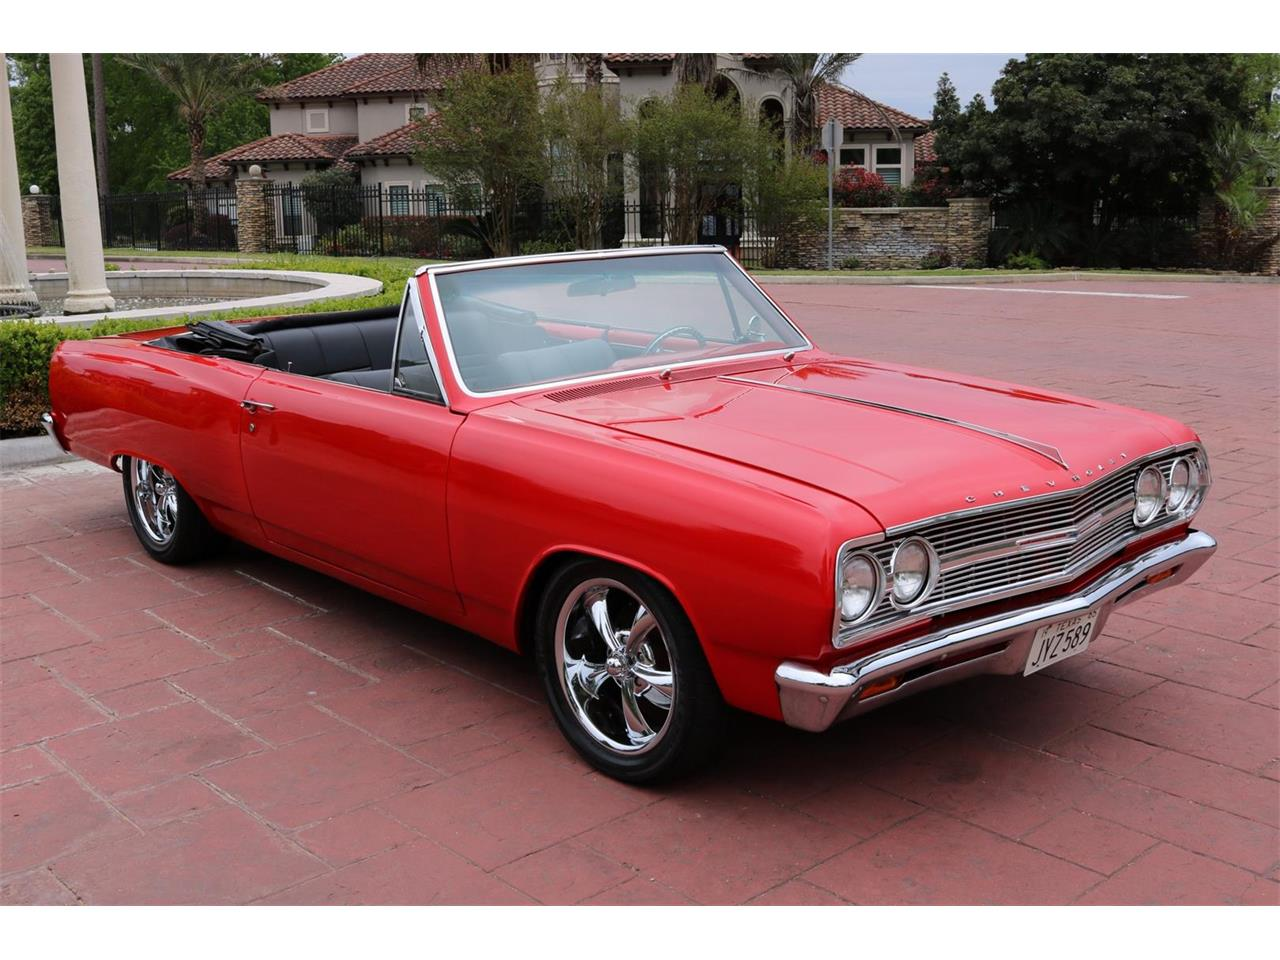 For Sale: 1965 Chevrolet Chevelle in Conroe, Texas